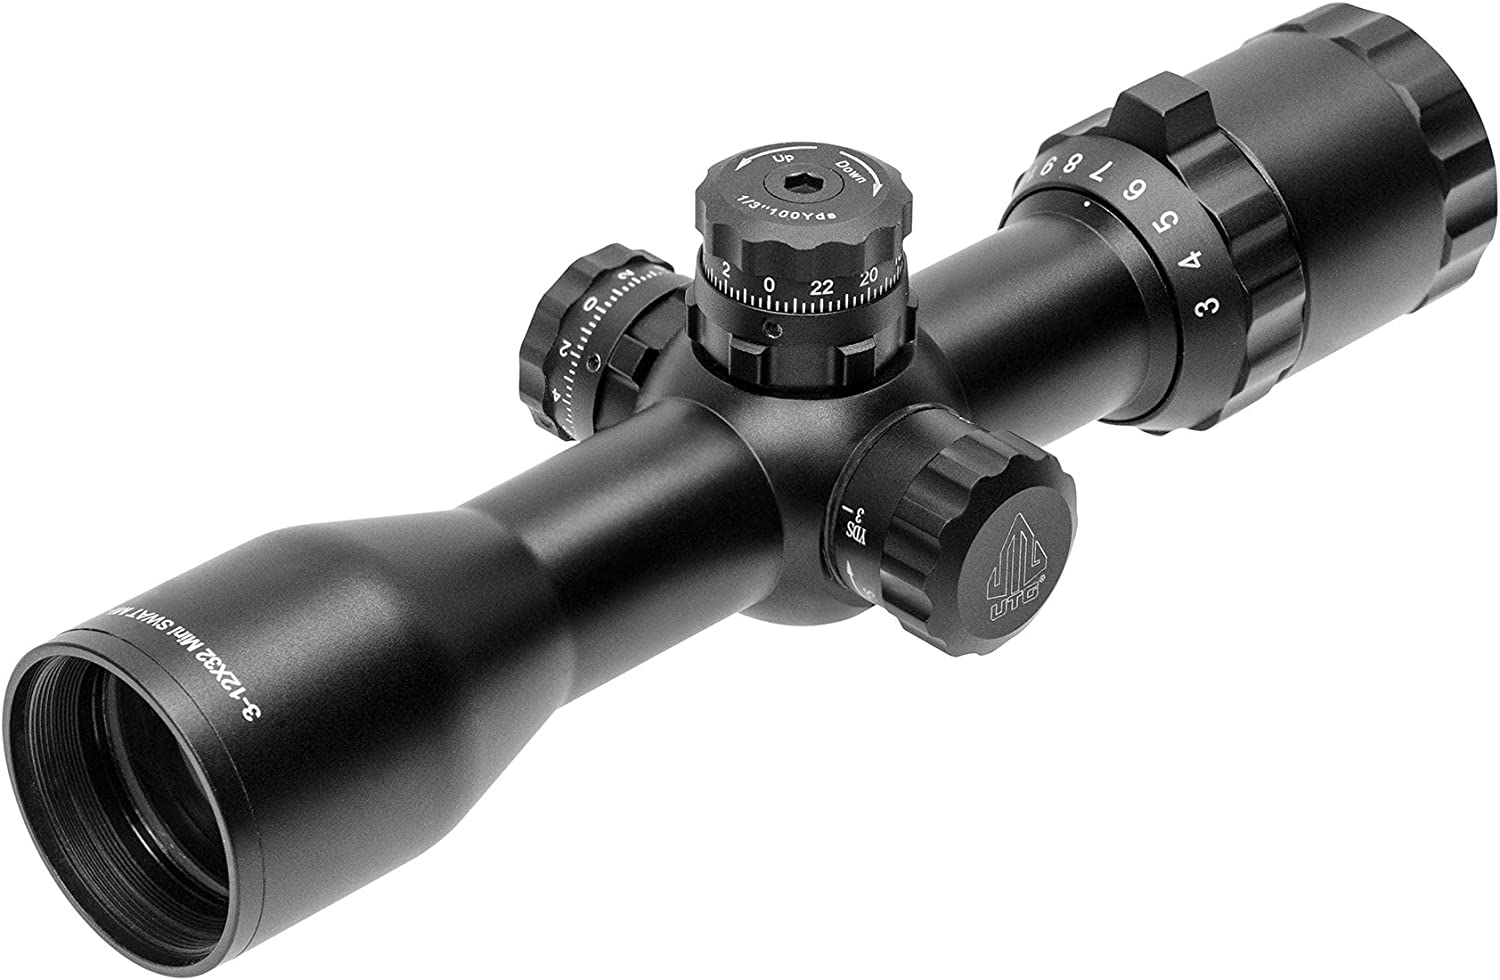 Leapers Inc, UTG BugBuster Riuflescope, 3-12x32mm, 1 Tube, Side AO, Mil-Dot Reticle, DT Rings, Black